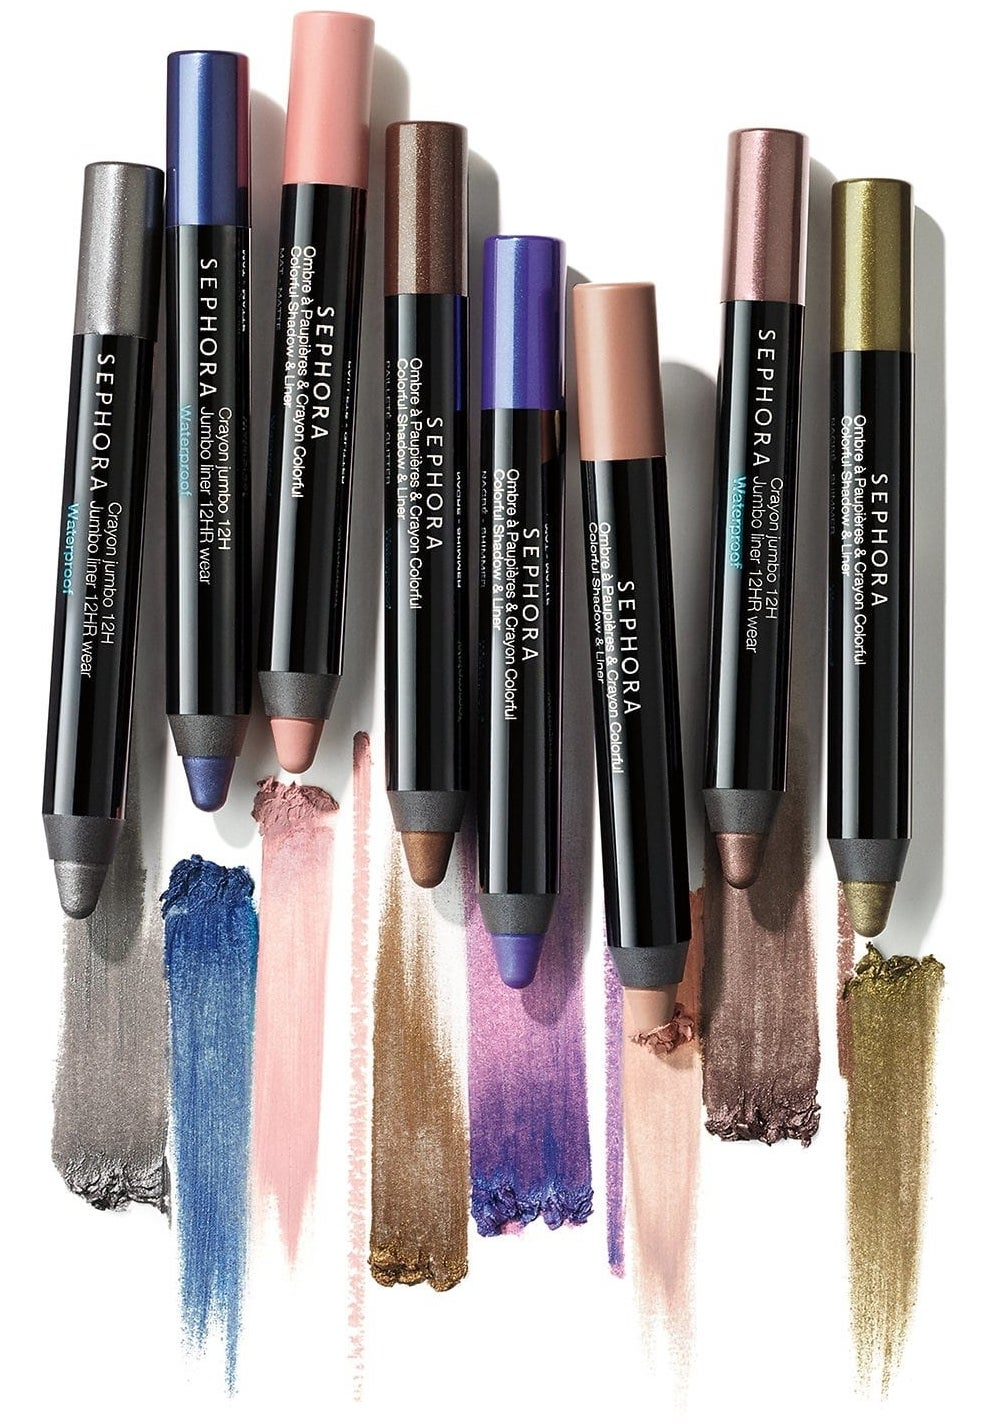 eight colorful shades of the eyeshadow stick